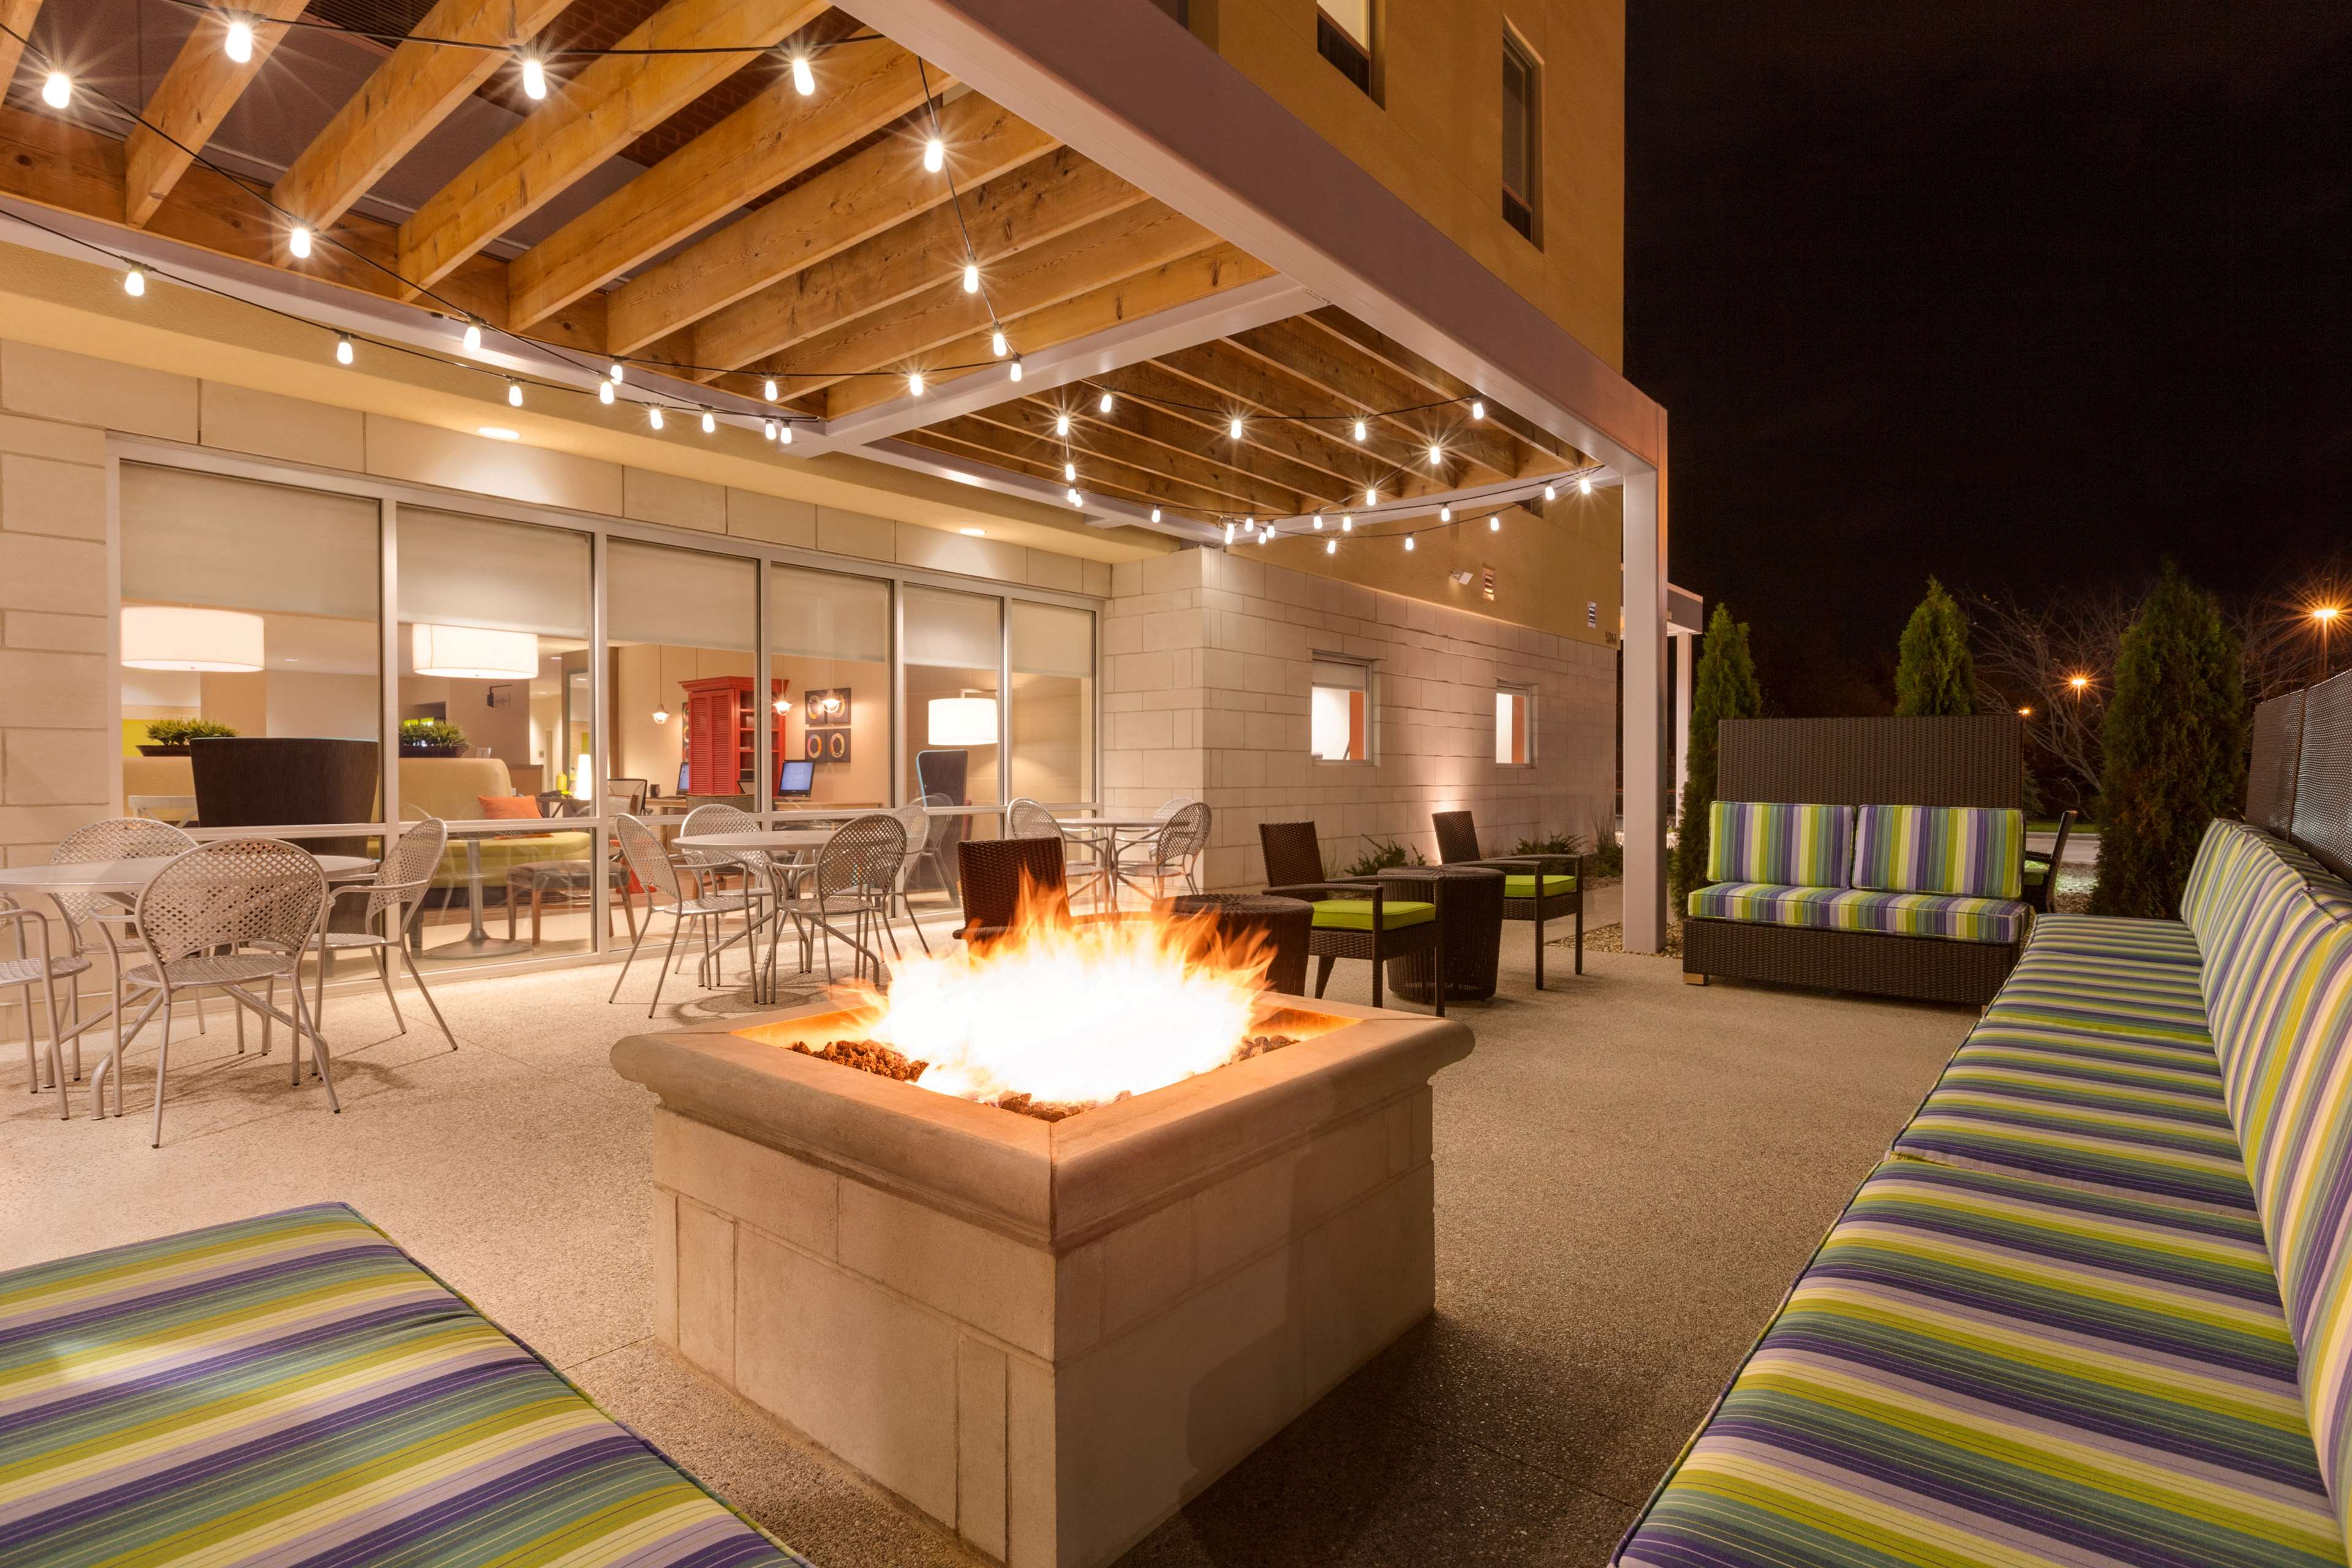 Home2 Suites By Hilton Youngstown West - Austintown image 2